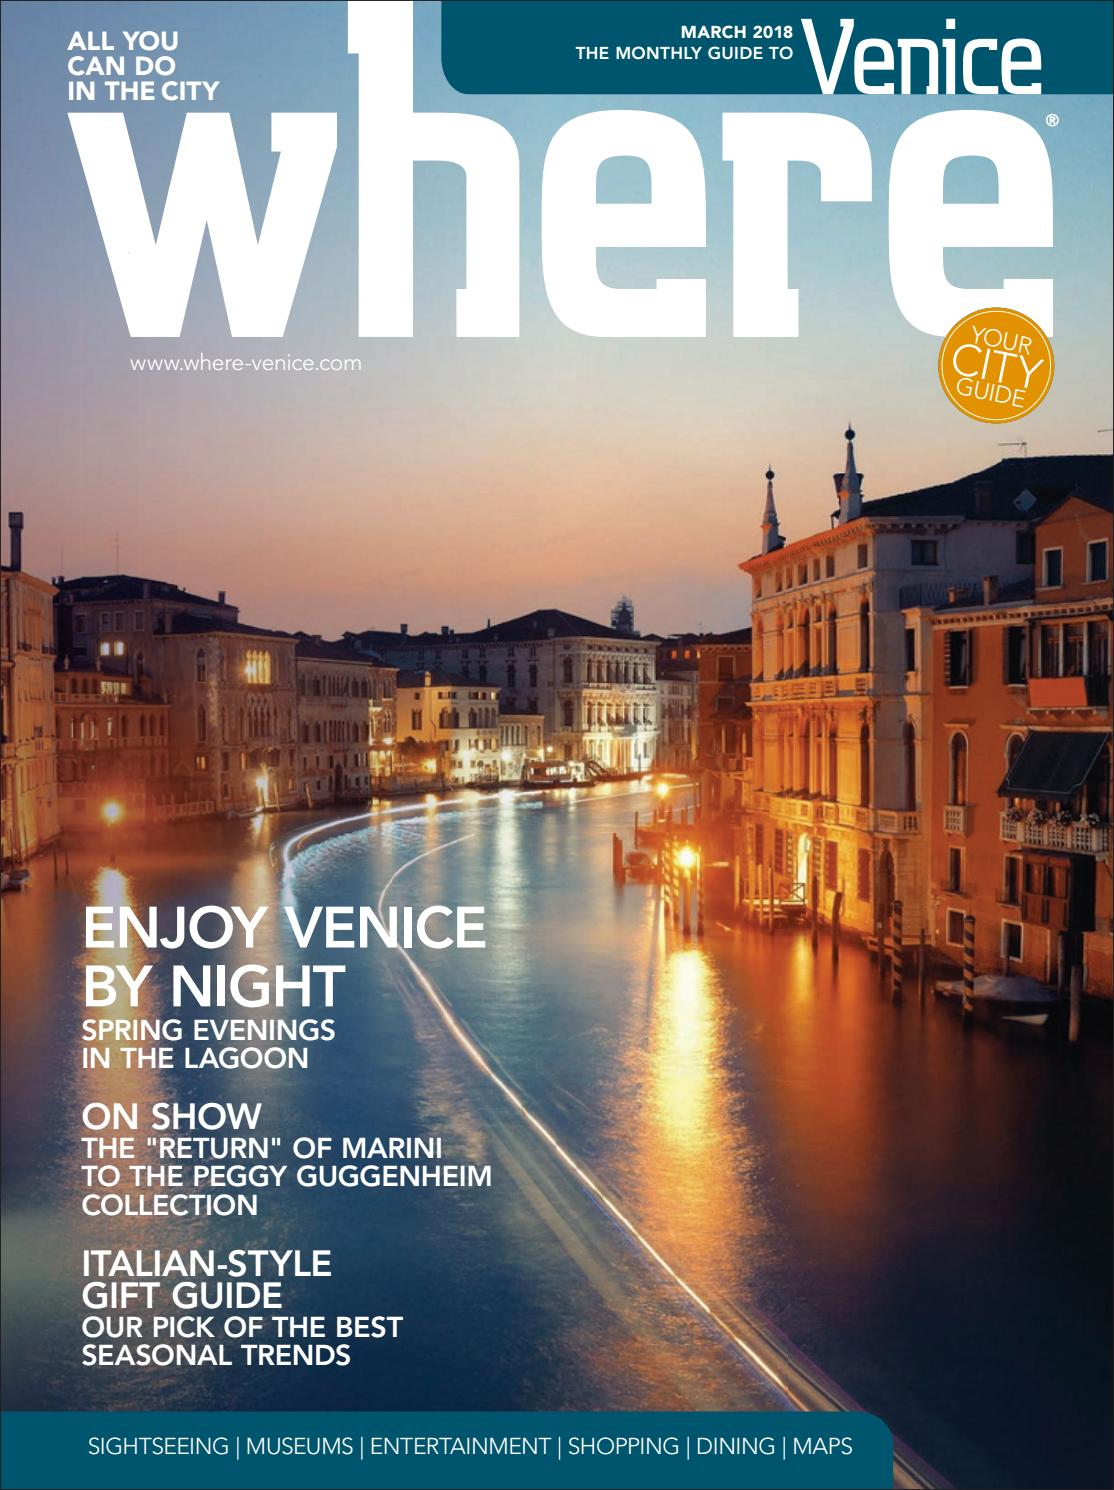 Where Magazine Venice Mar 2018 By Morris Media Network Issuu